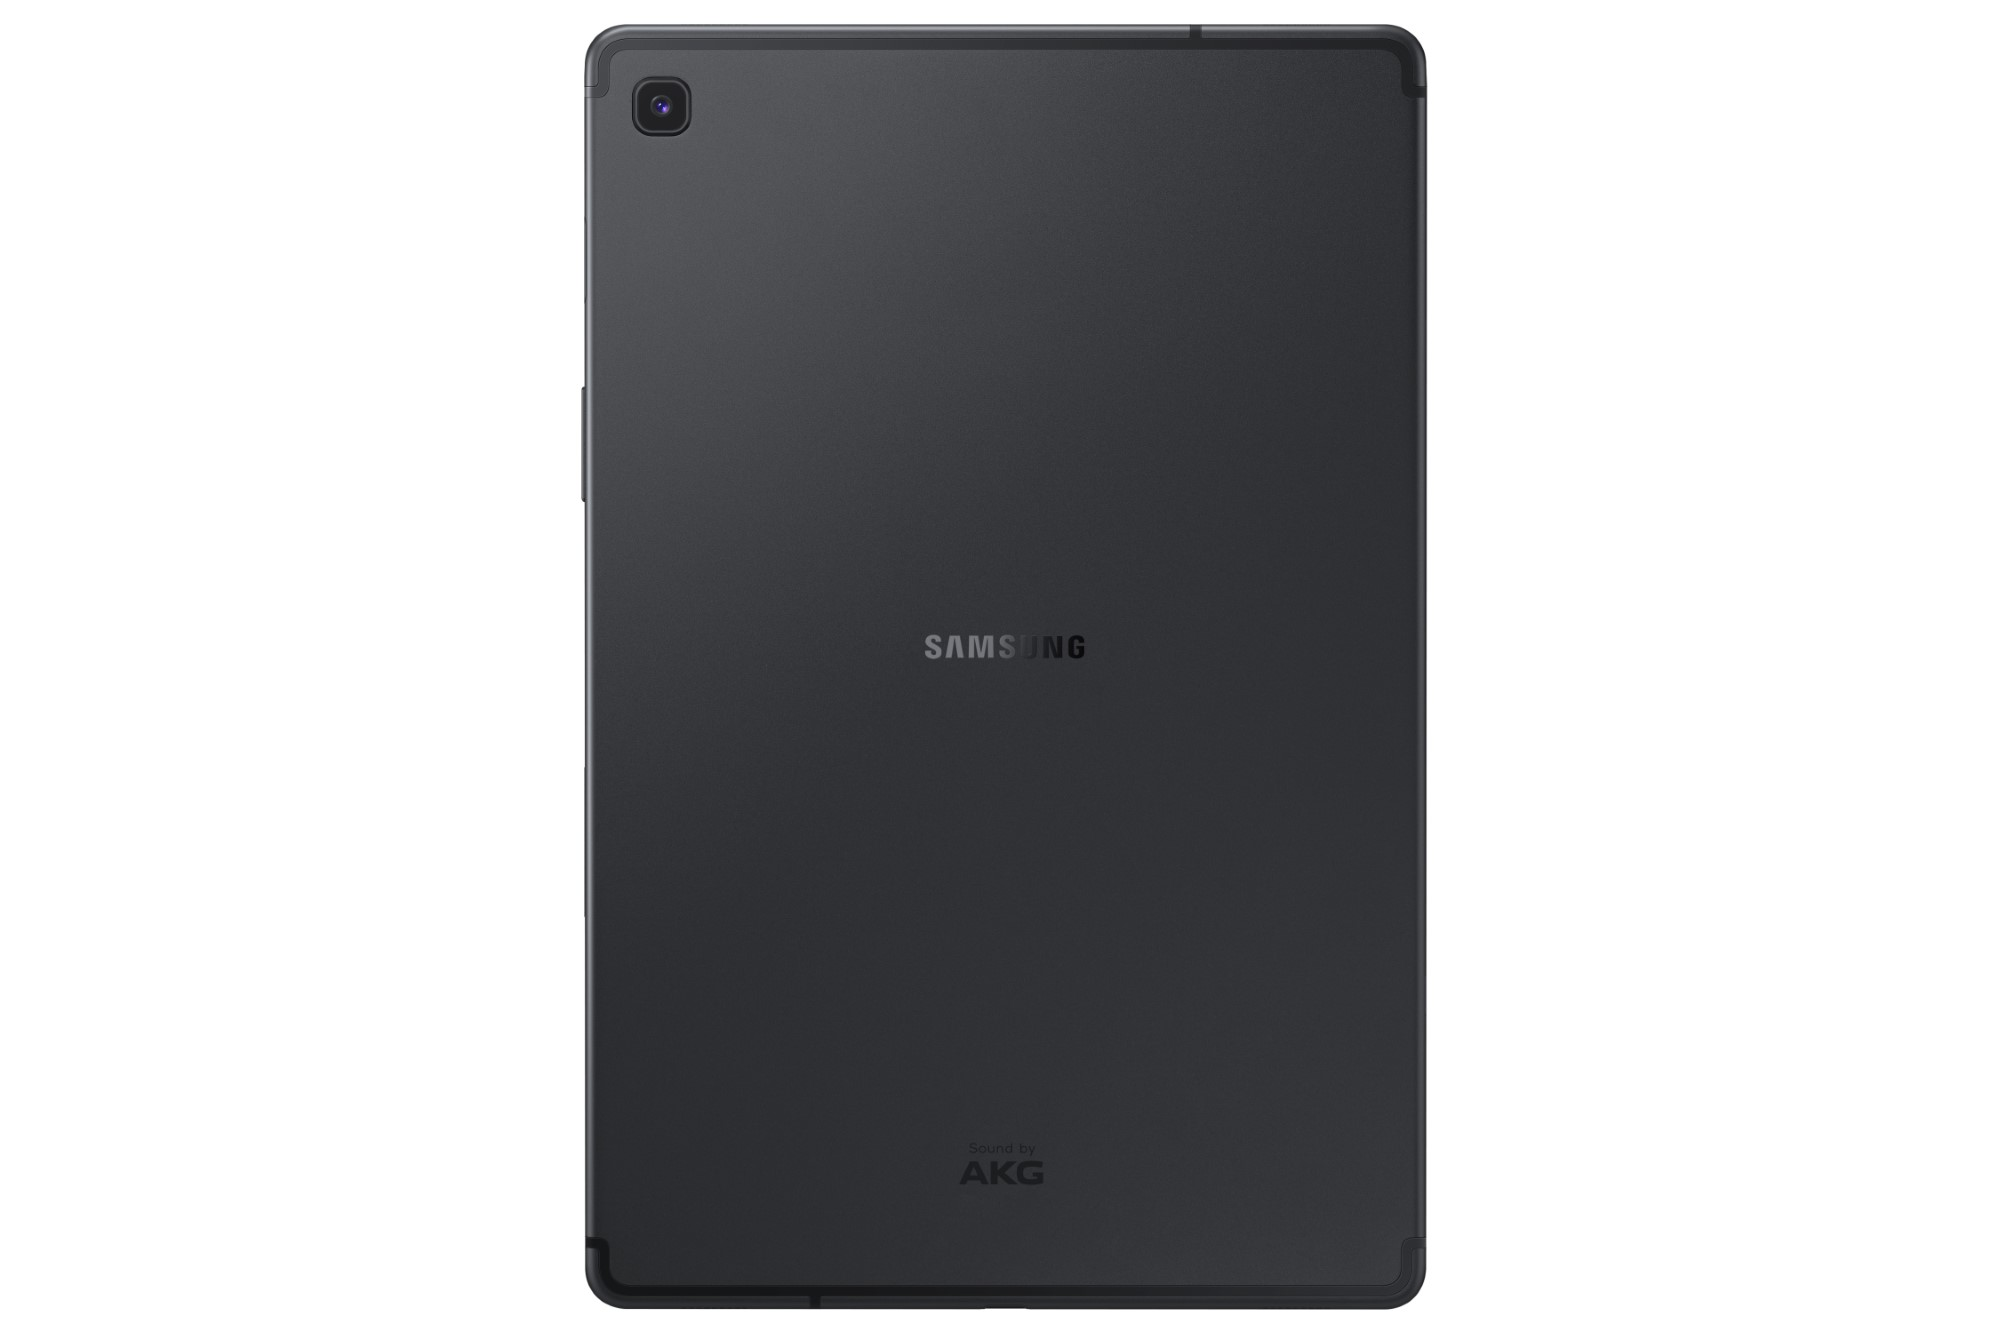 samsung announces new midrange galaxy tab s5e tablet for 399. Black Bedroom Furniture Sets. Home Design Ideas